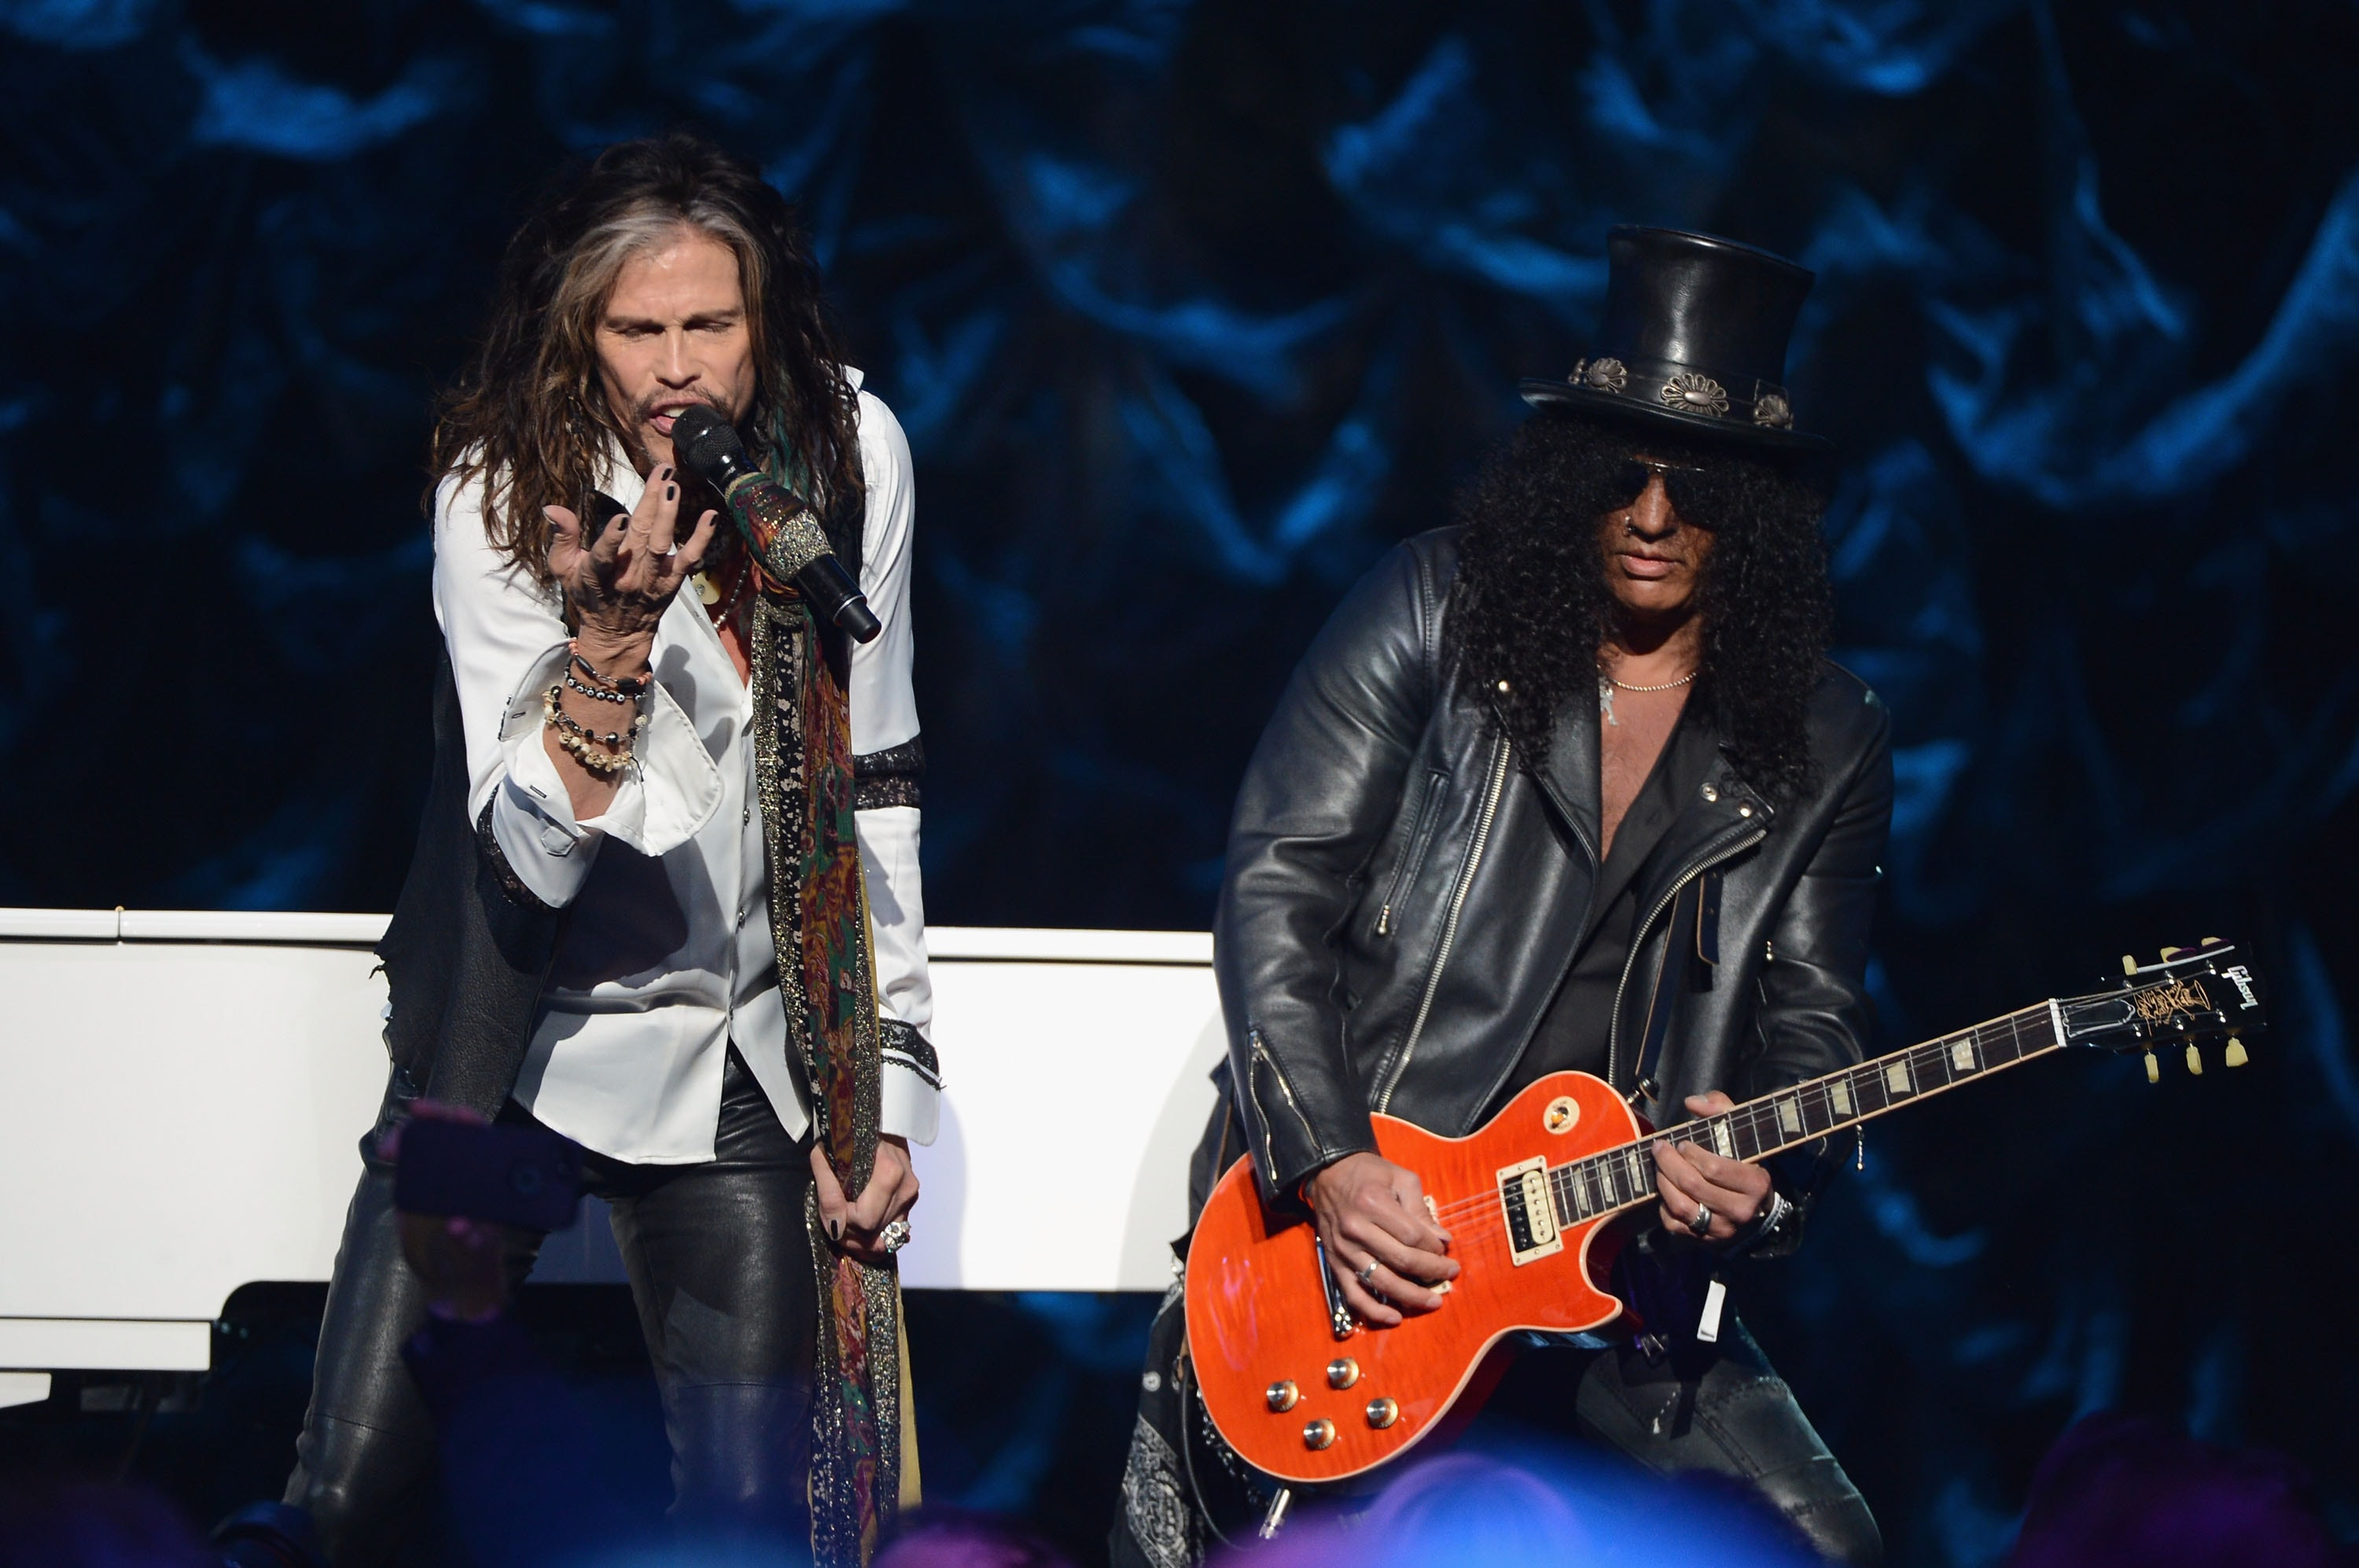 NEW YORK, NY - JANUARY 31: Steven Tyler and Slash perform onstage at 'Howard Stern's Birthday Bash' presented by SiriusXM, produced by Howard Stern Productions at Hammerstein Ballroom on January 31, 2014 in New York City.